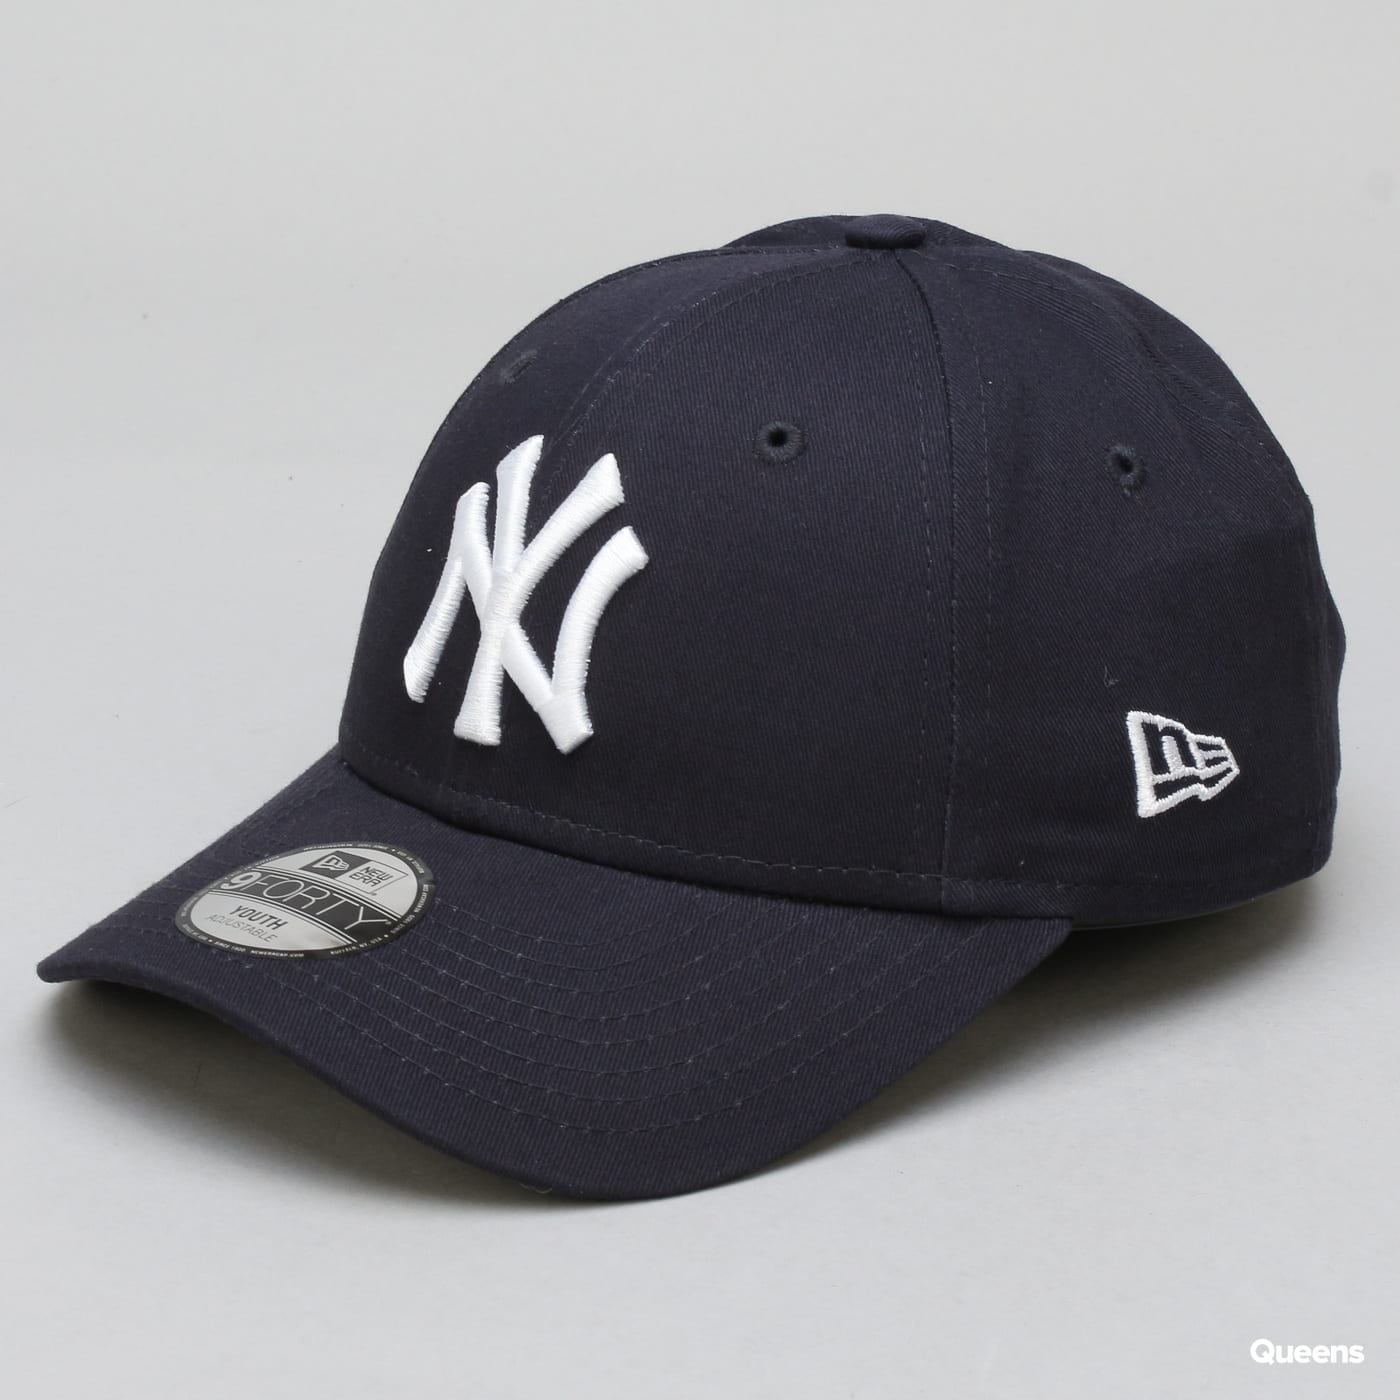 New Era Youth 940K MLB League NY C/O Marine